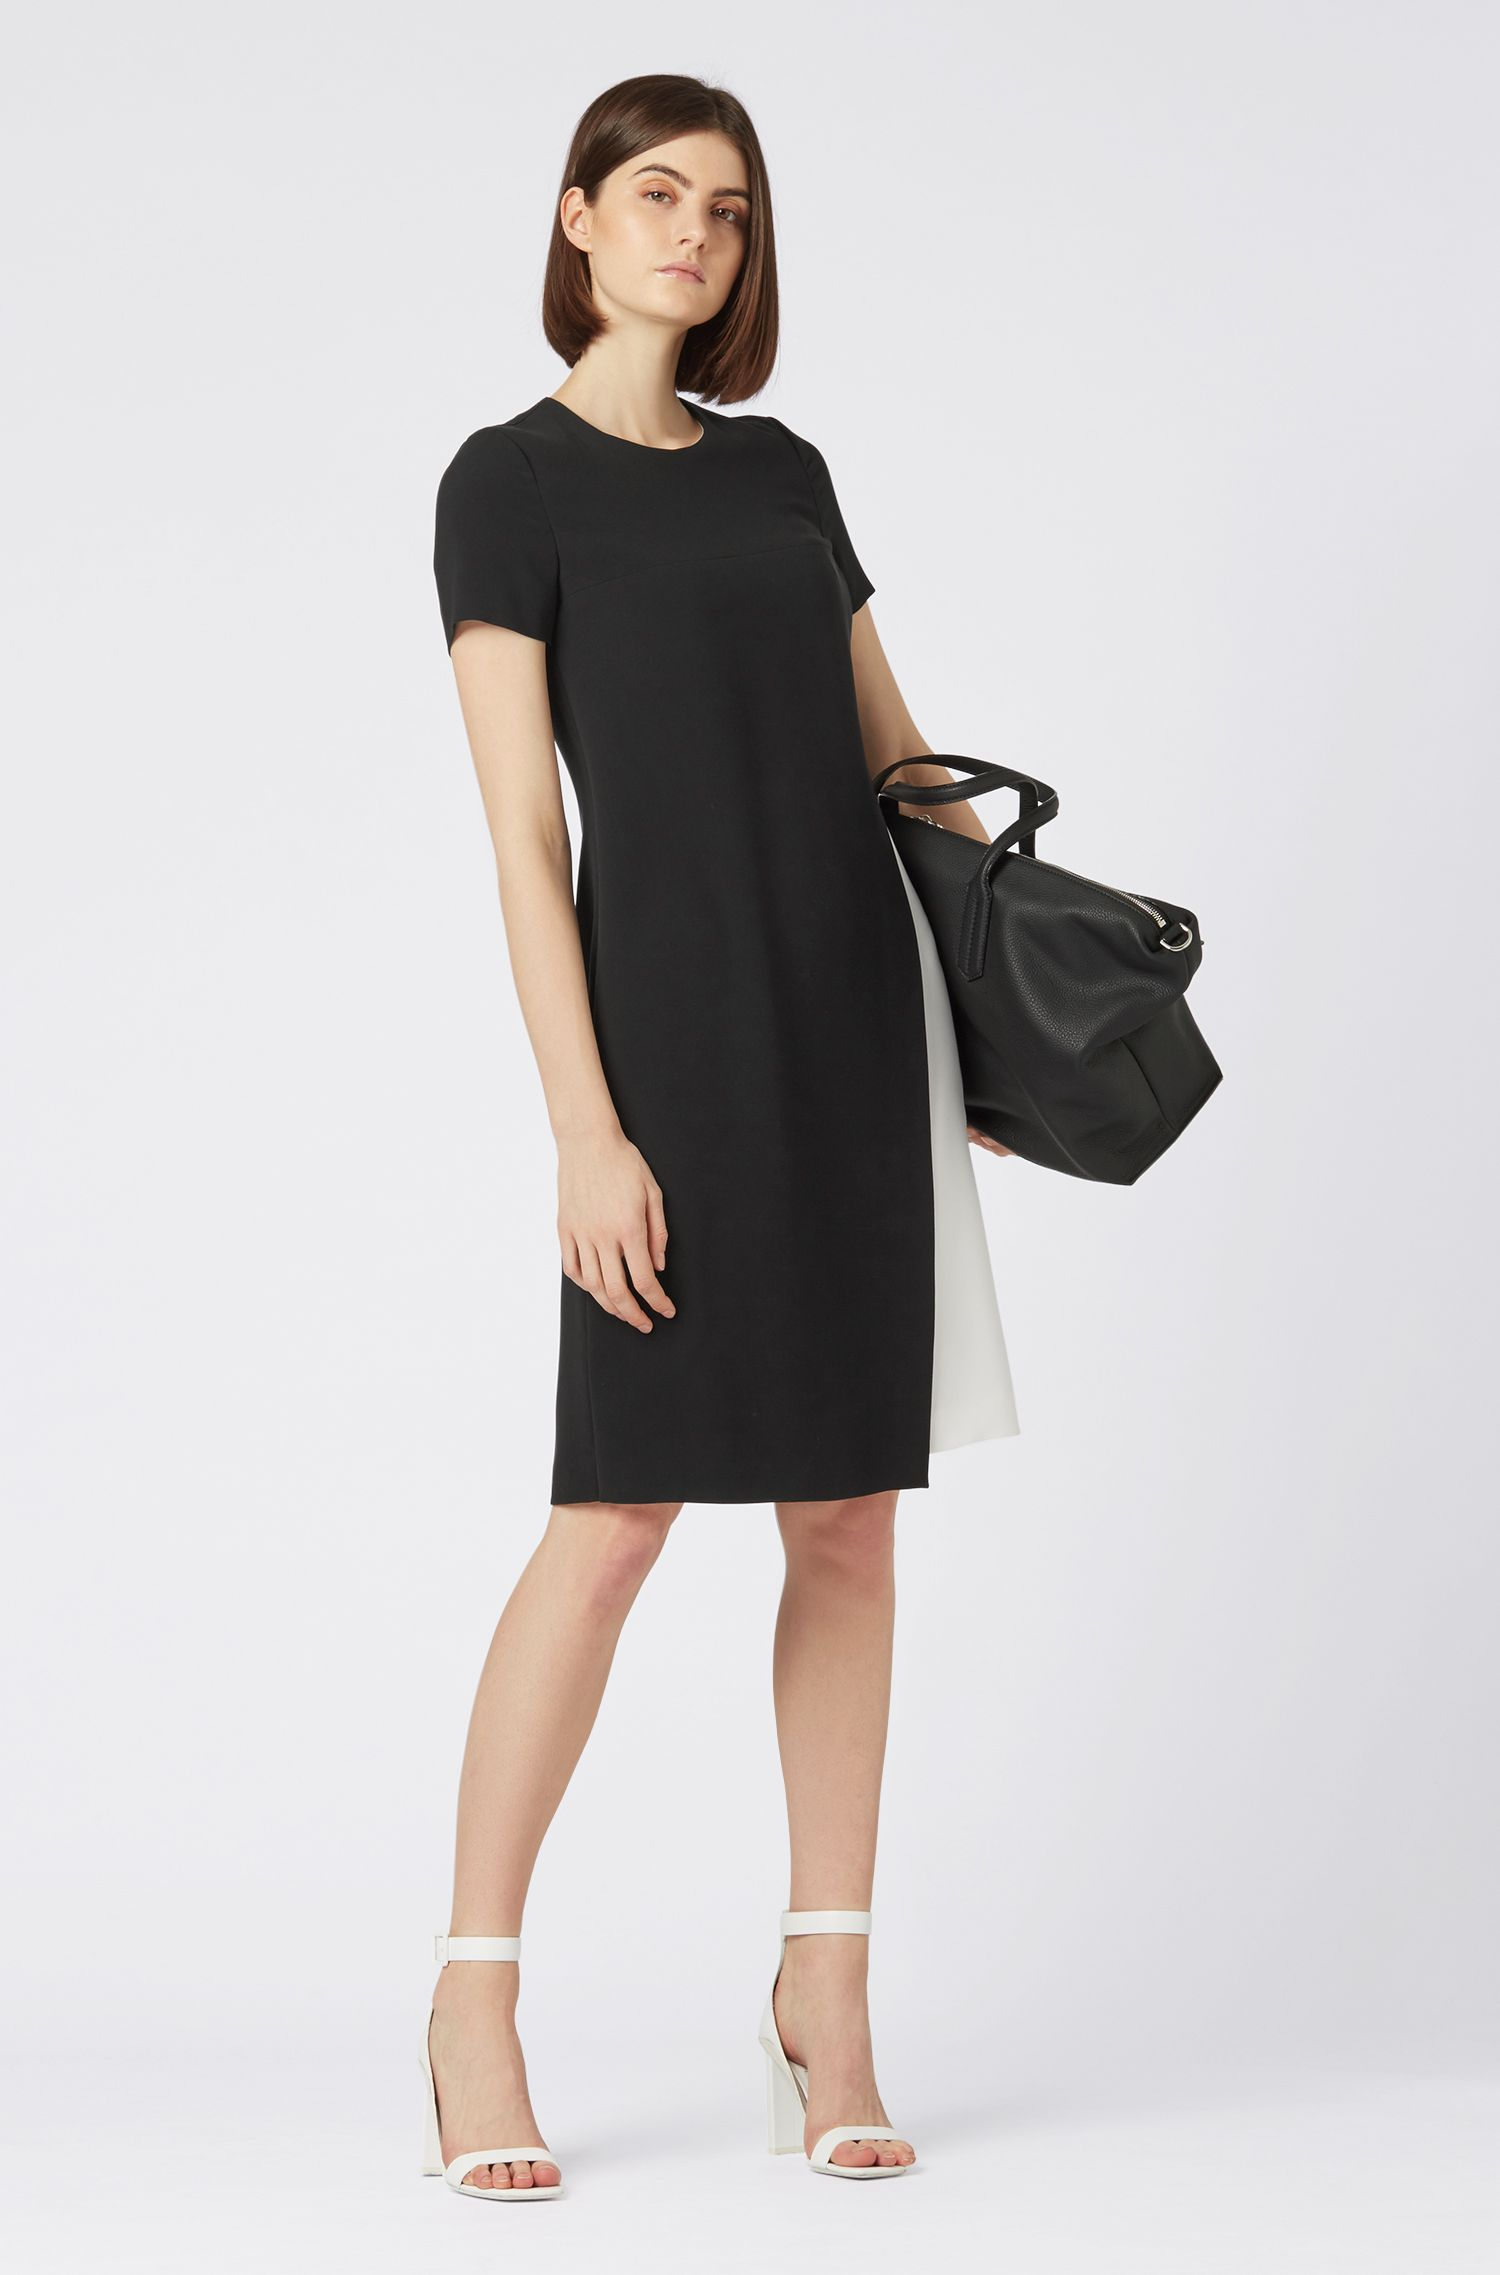 Colourblock dress in crease-resistant Japanese crepe, Black